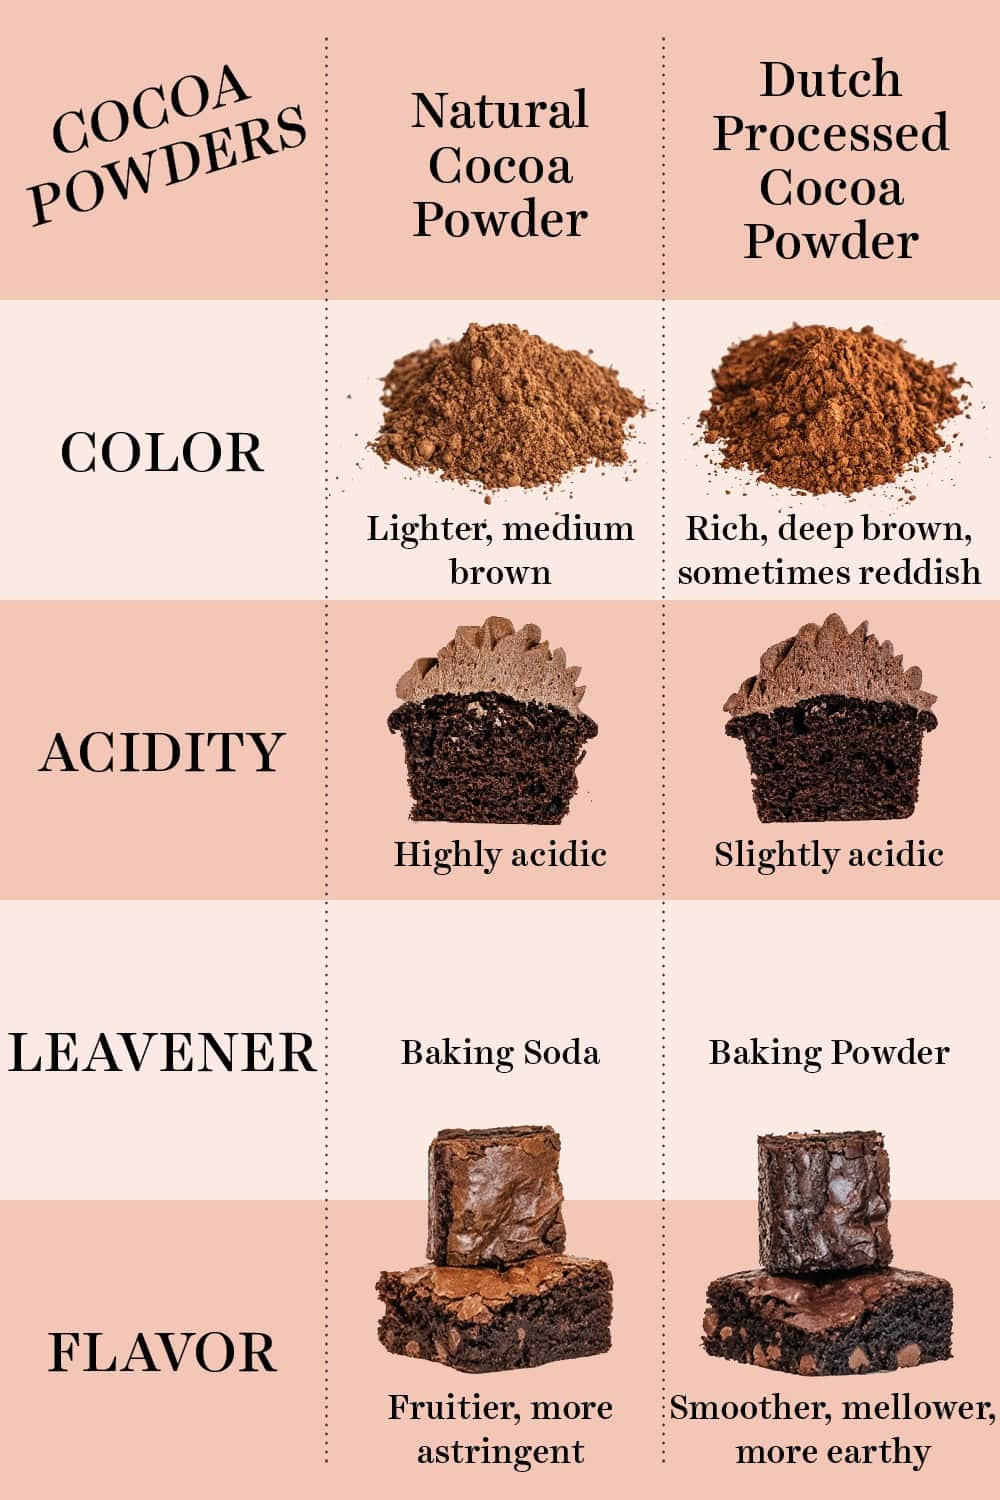 chart comparing dutch process and natural cocoa powders